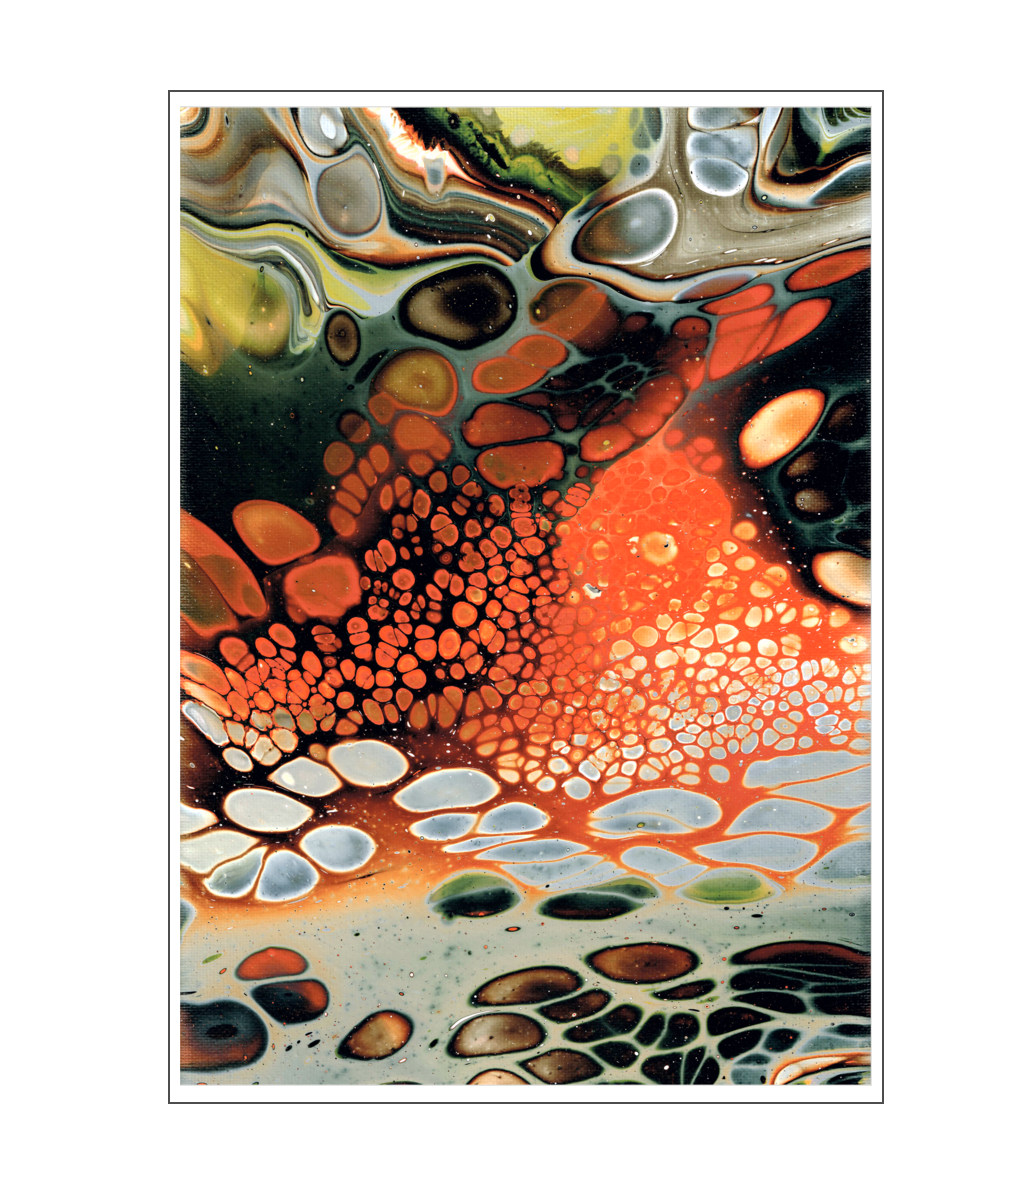 Unframed Art Print - 17092002